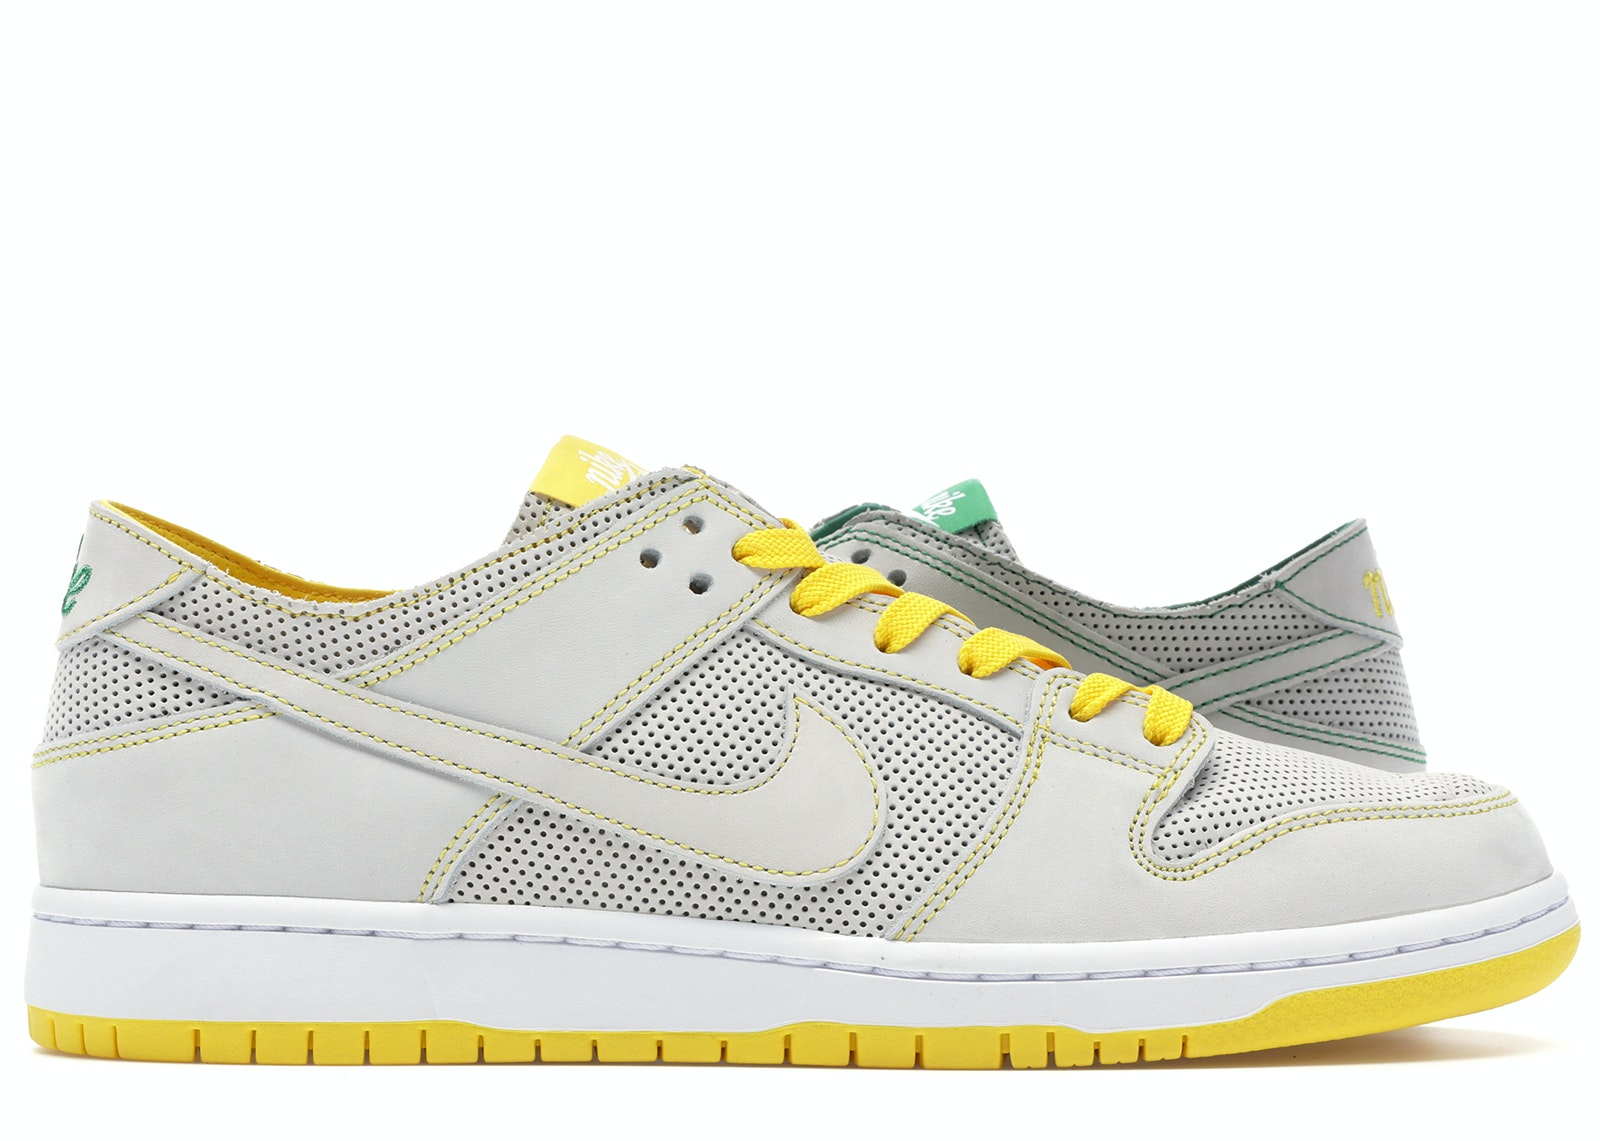 Nike SB Dunk Low Decon Ishod Wair Mismatch